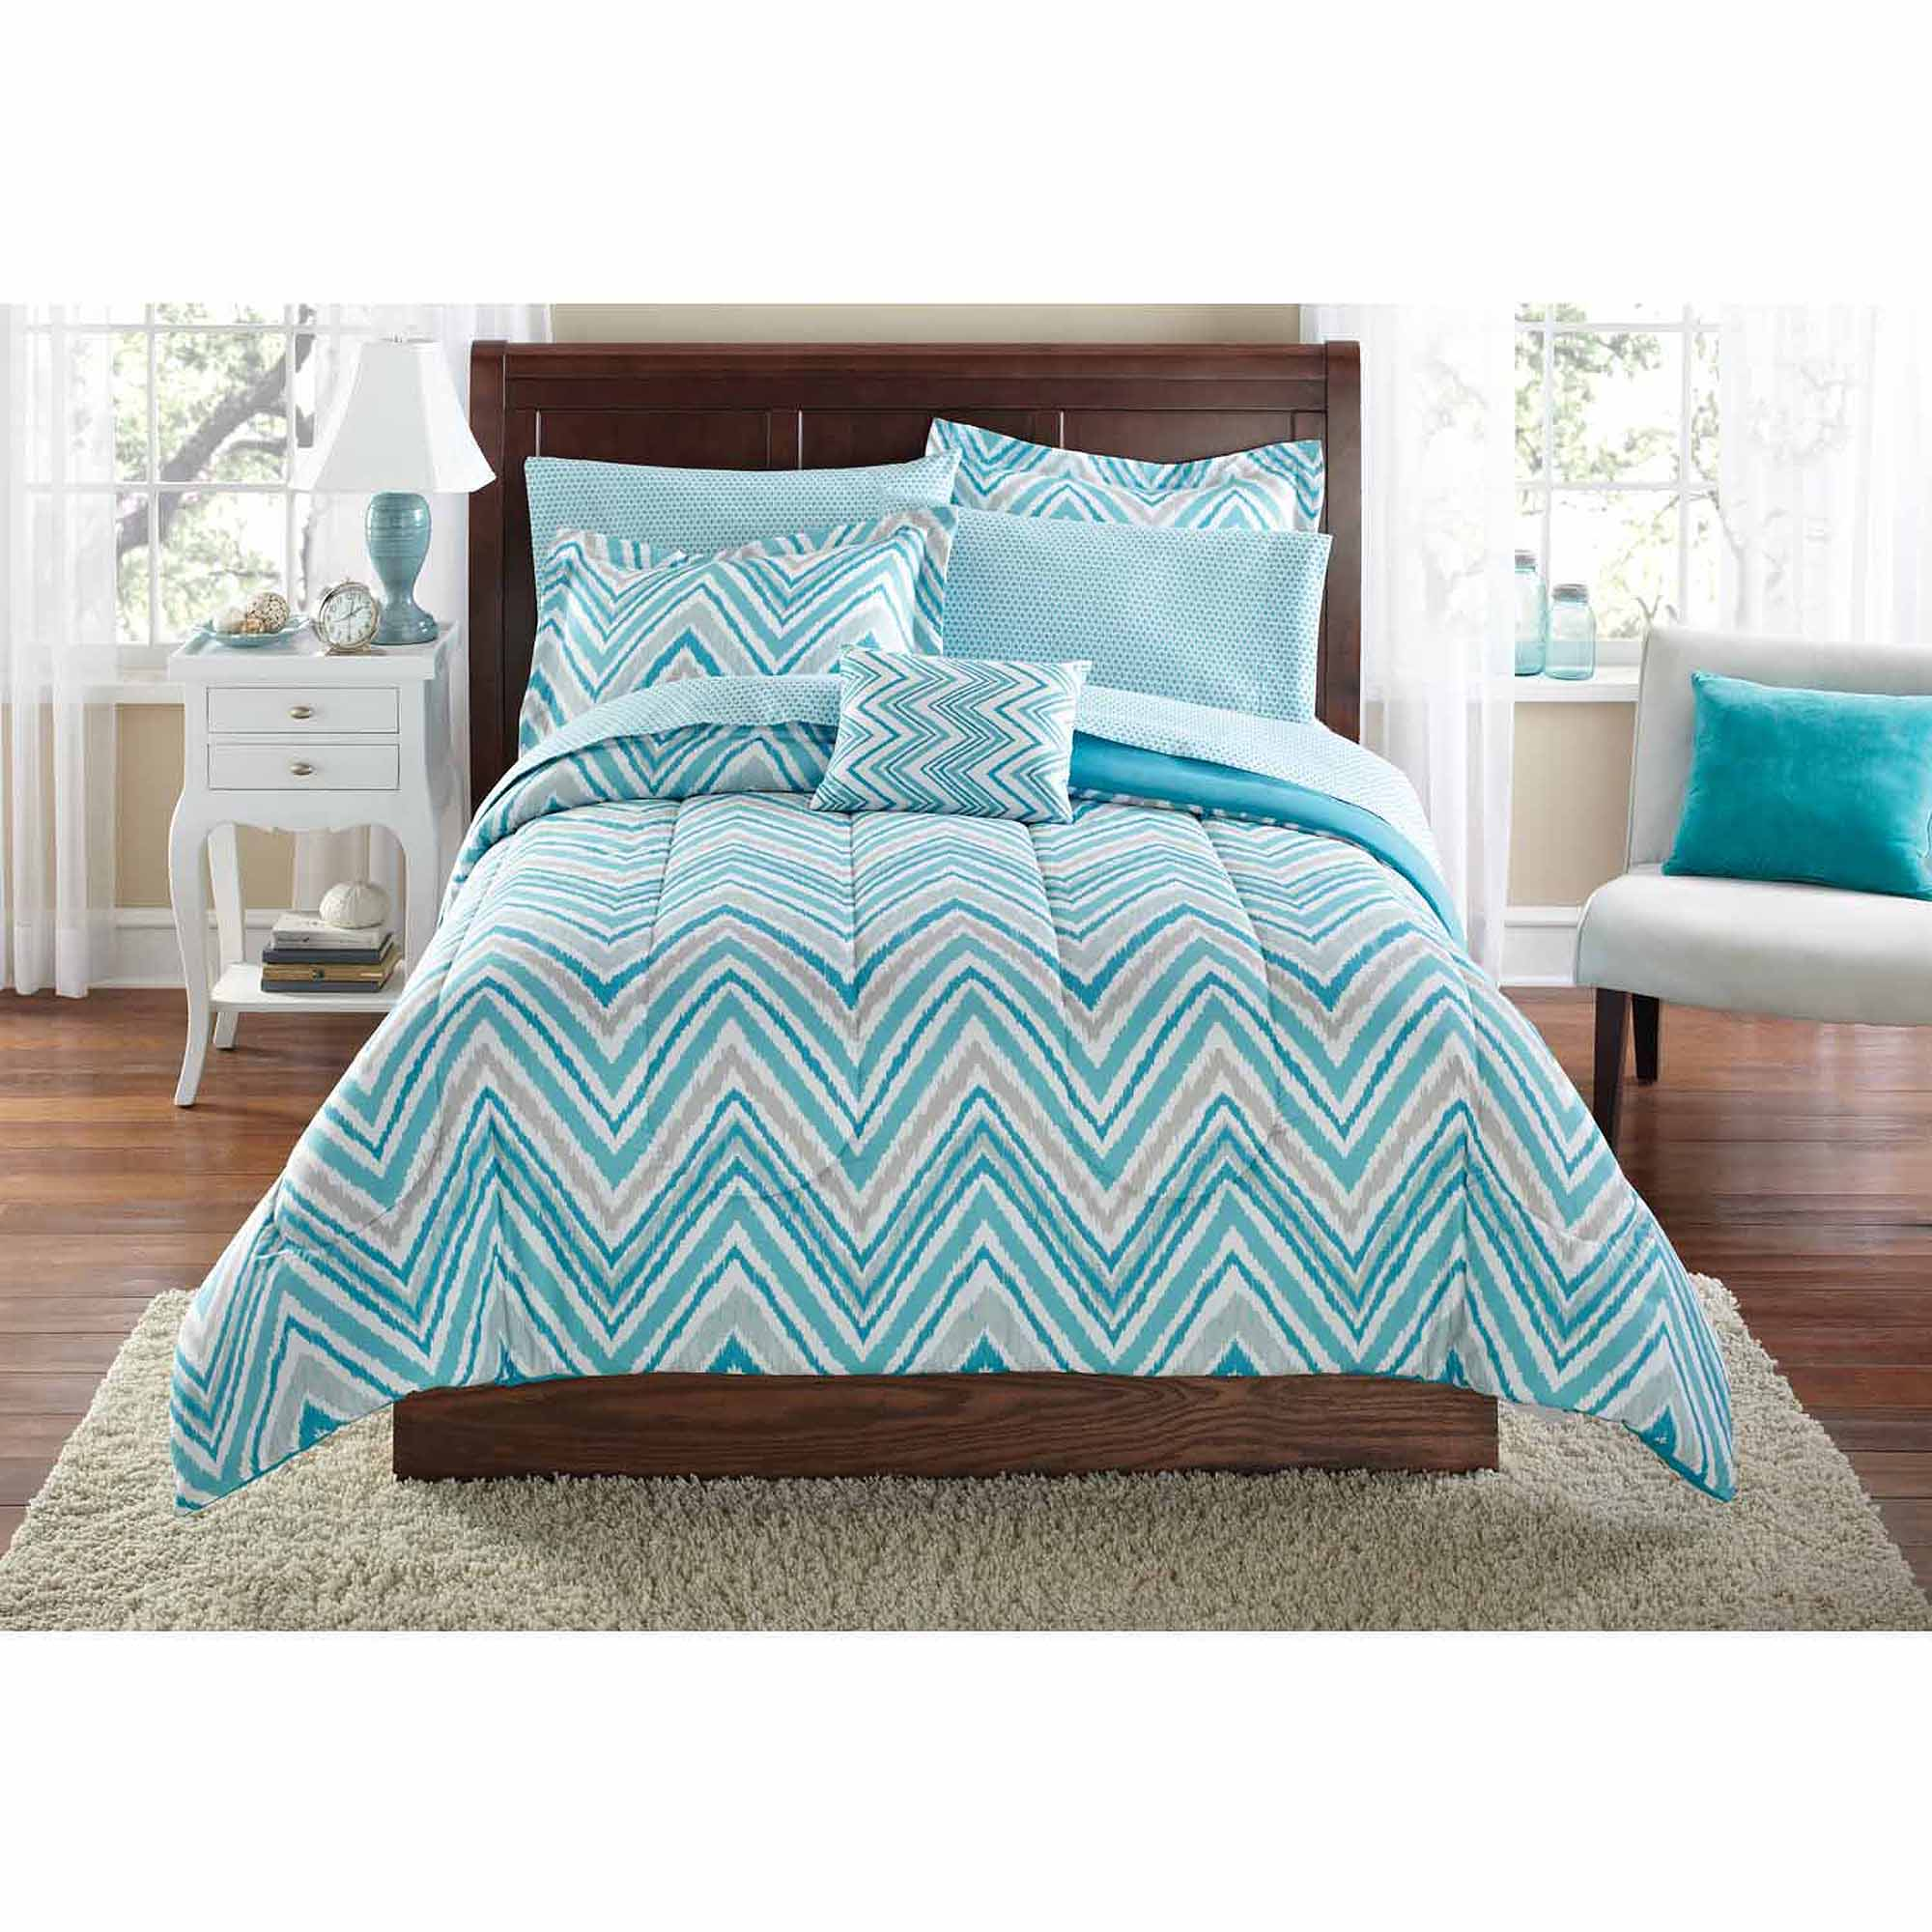 find twin bed xl line on alibaba a at maddie in quotations bedding diamond deals bag size set cheap com guides shopping get